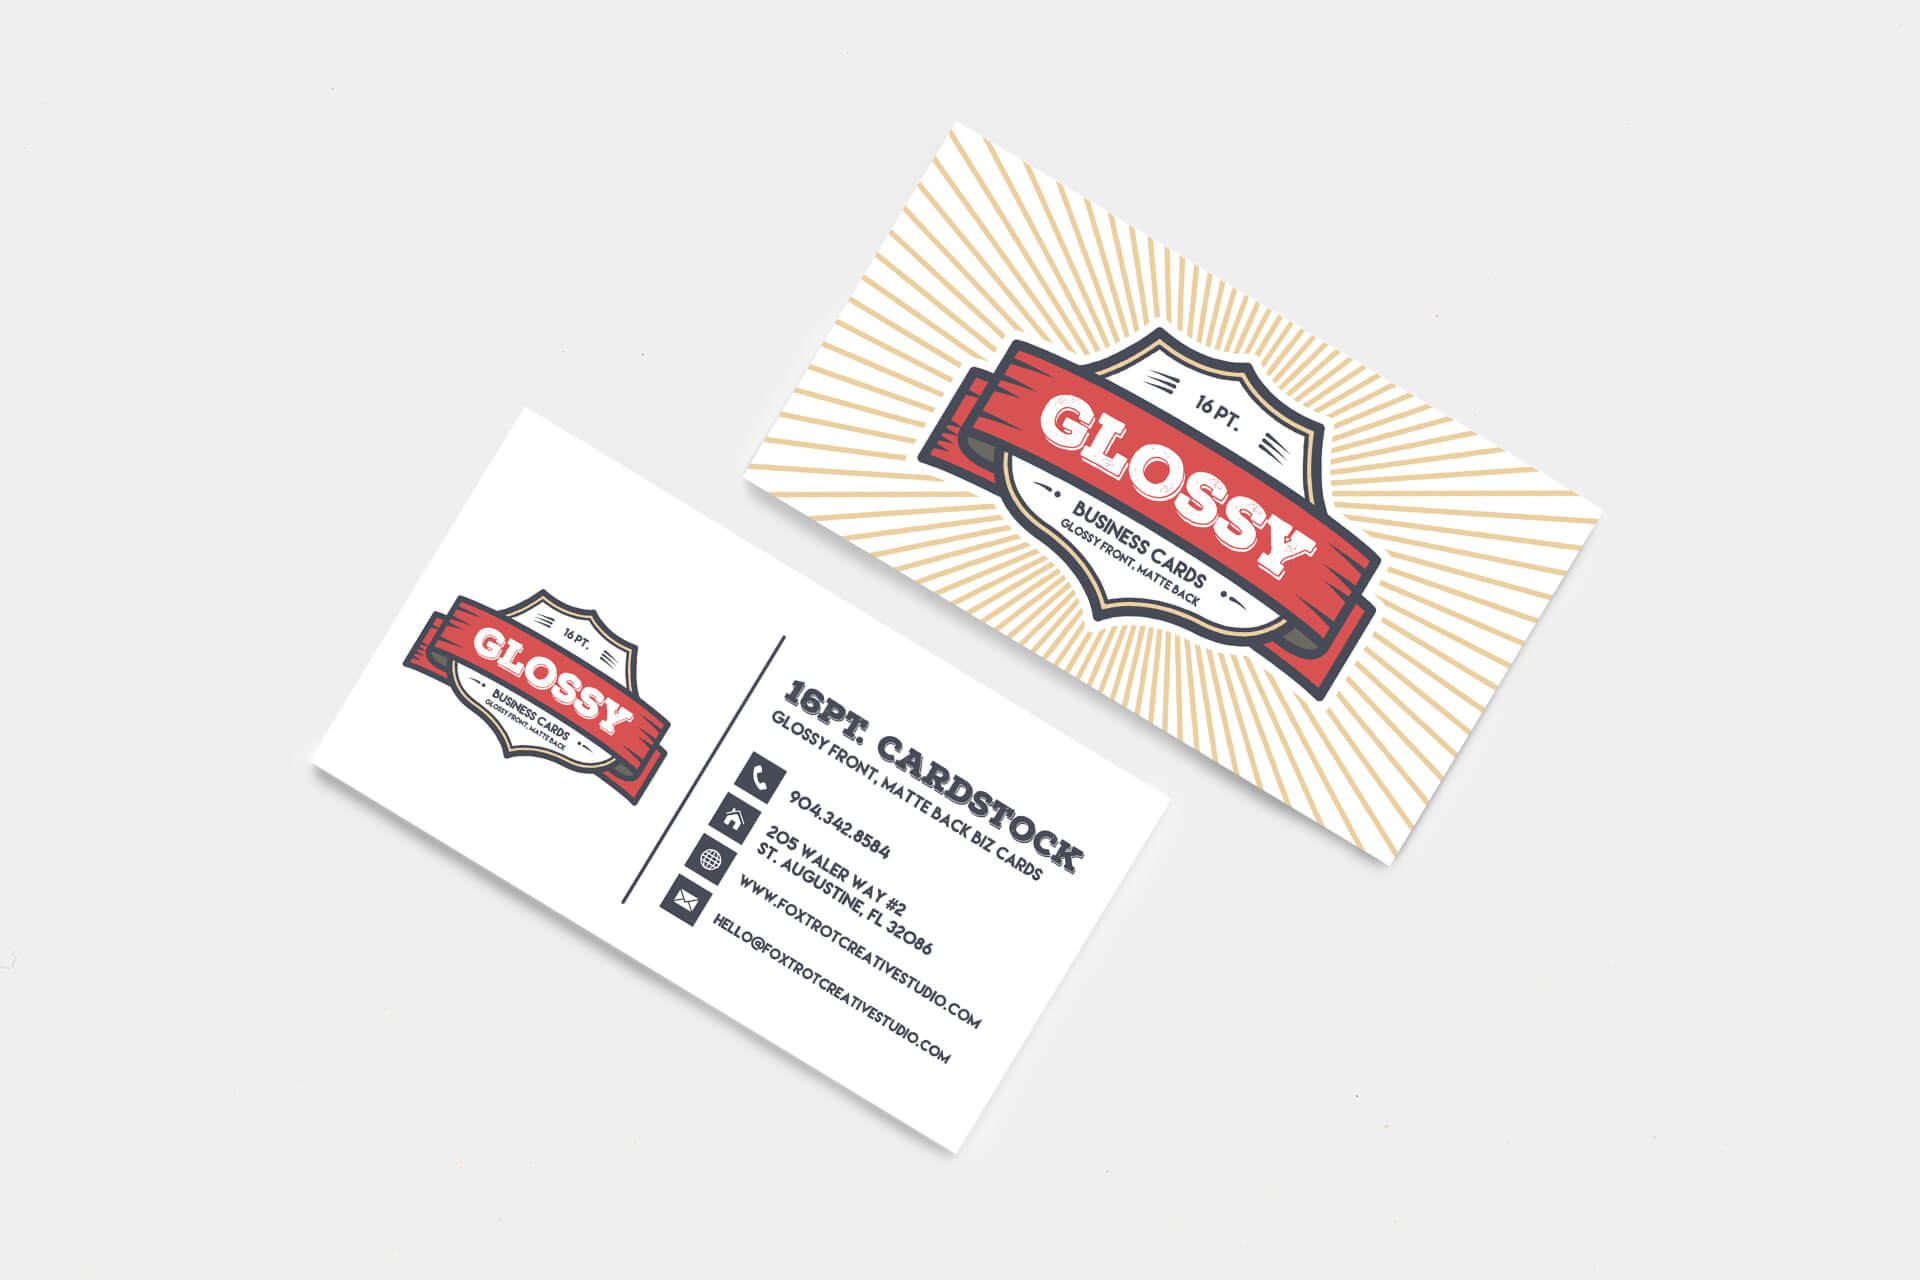 004 Template Ideas Staples Business Cards Templates Card With Regard To Staples Business Card Template